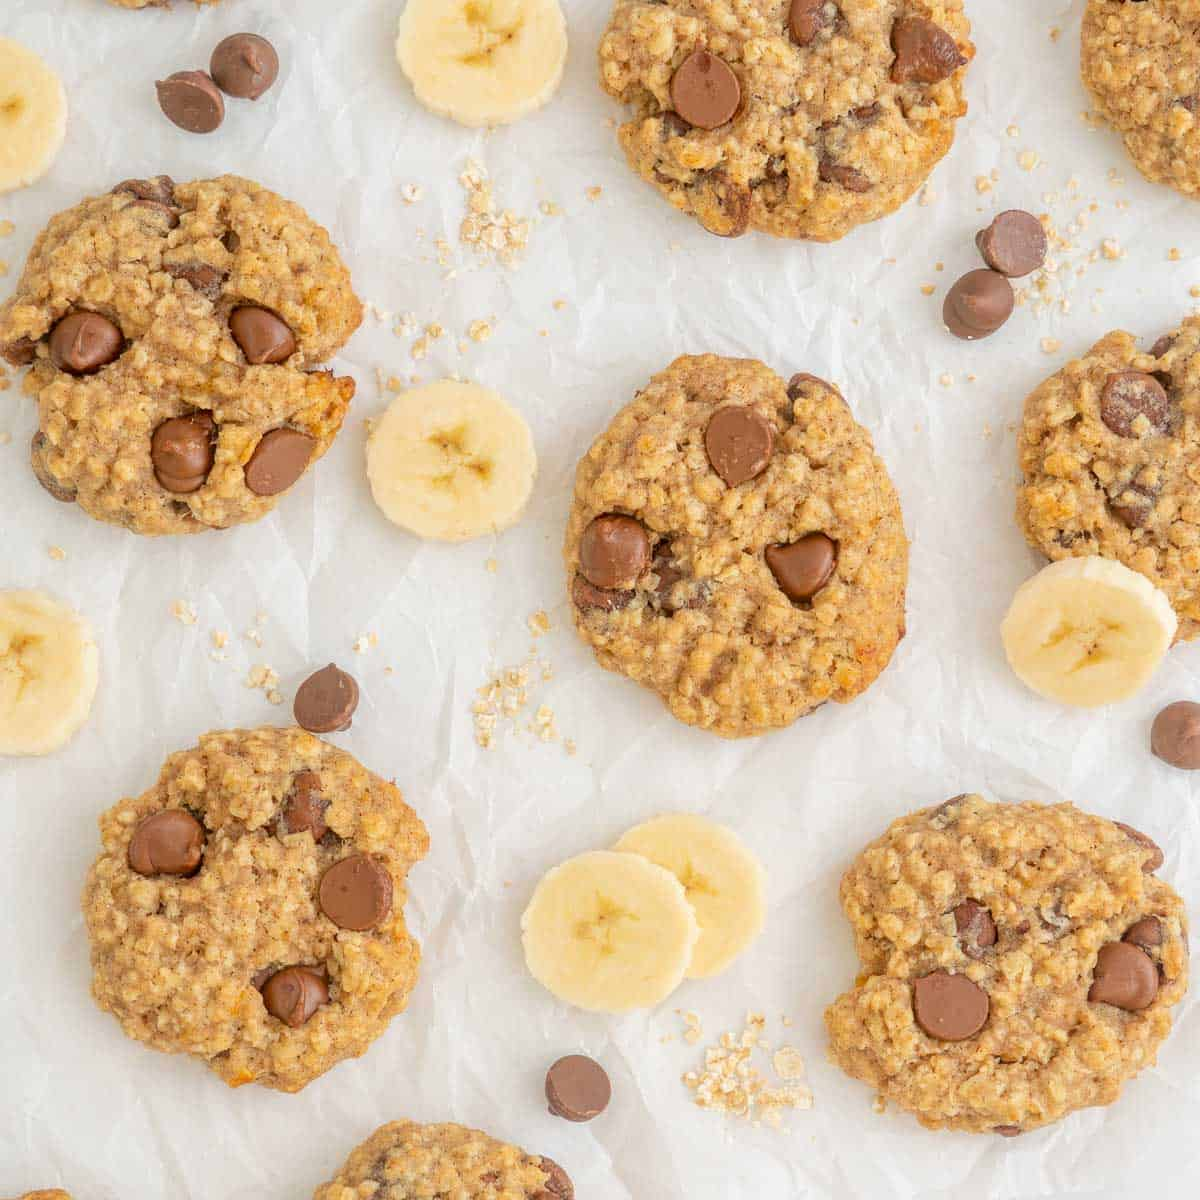 Banana oatmeal cookies laid out on baking paper, with slices of banana and a scattering of rolled oats and chocolate drops.